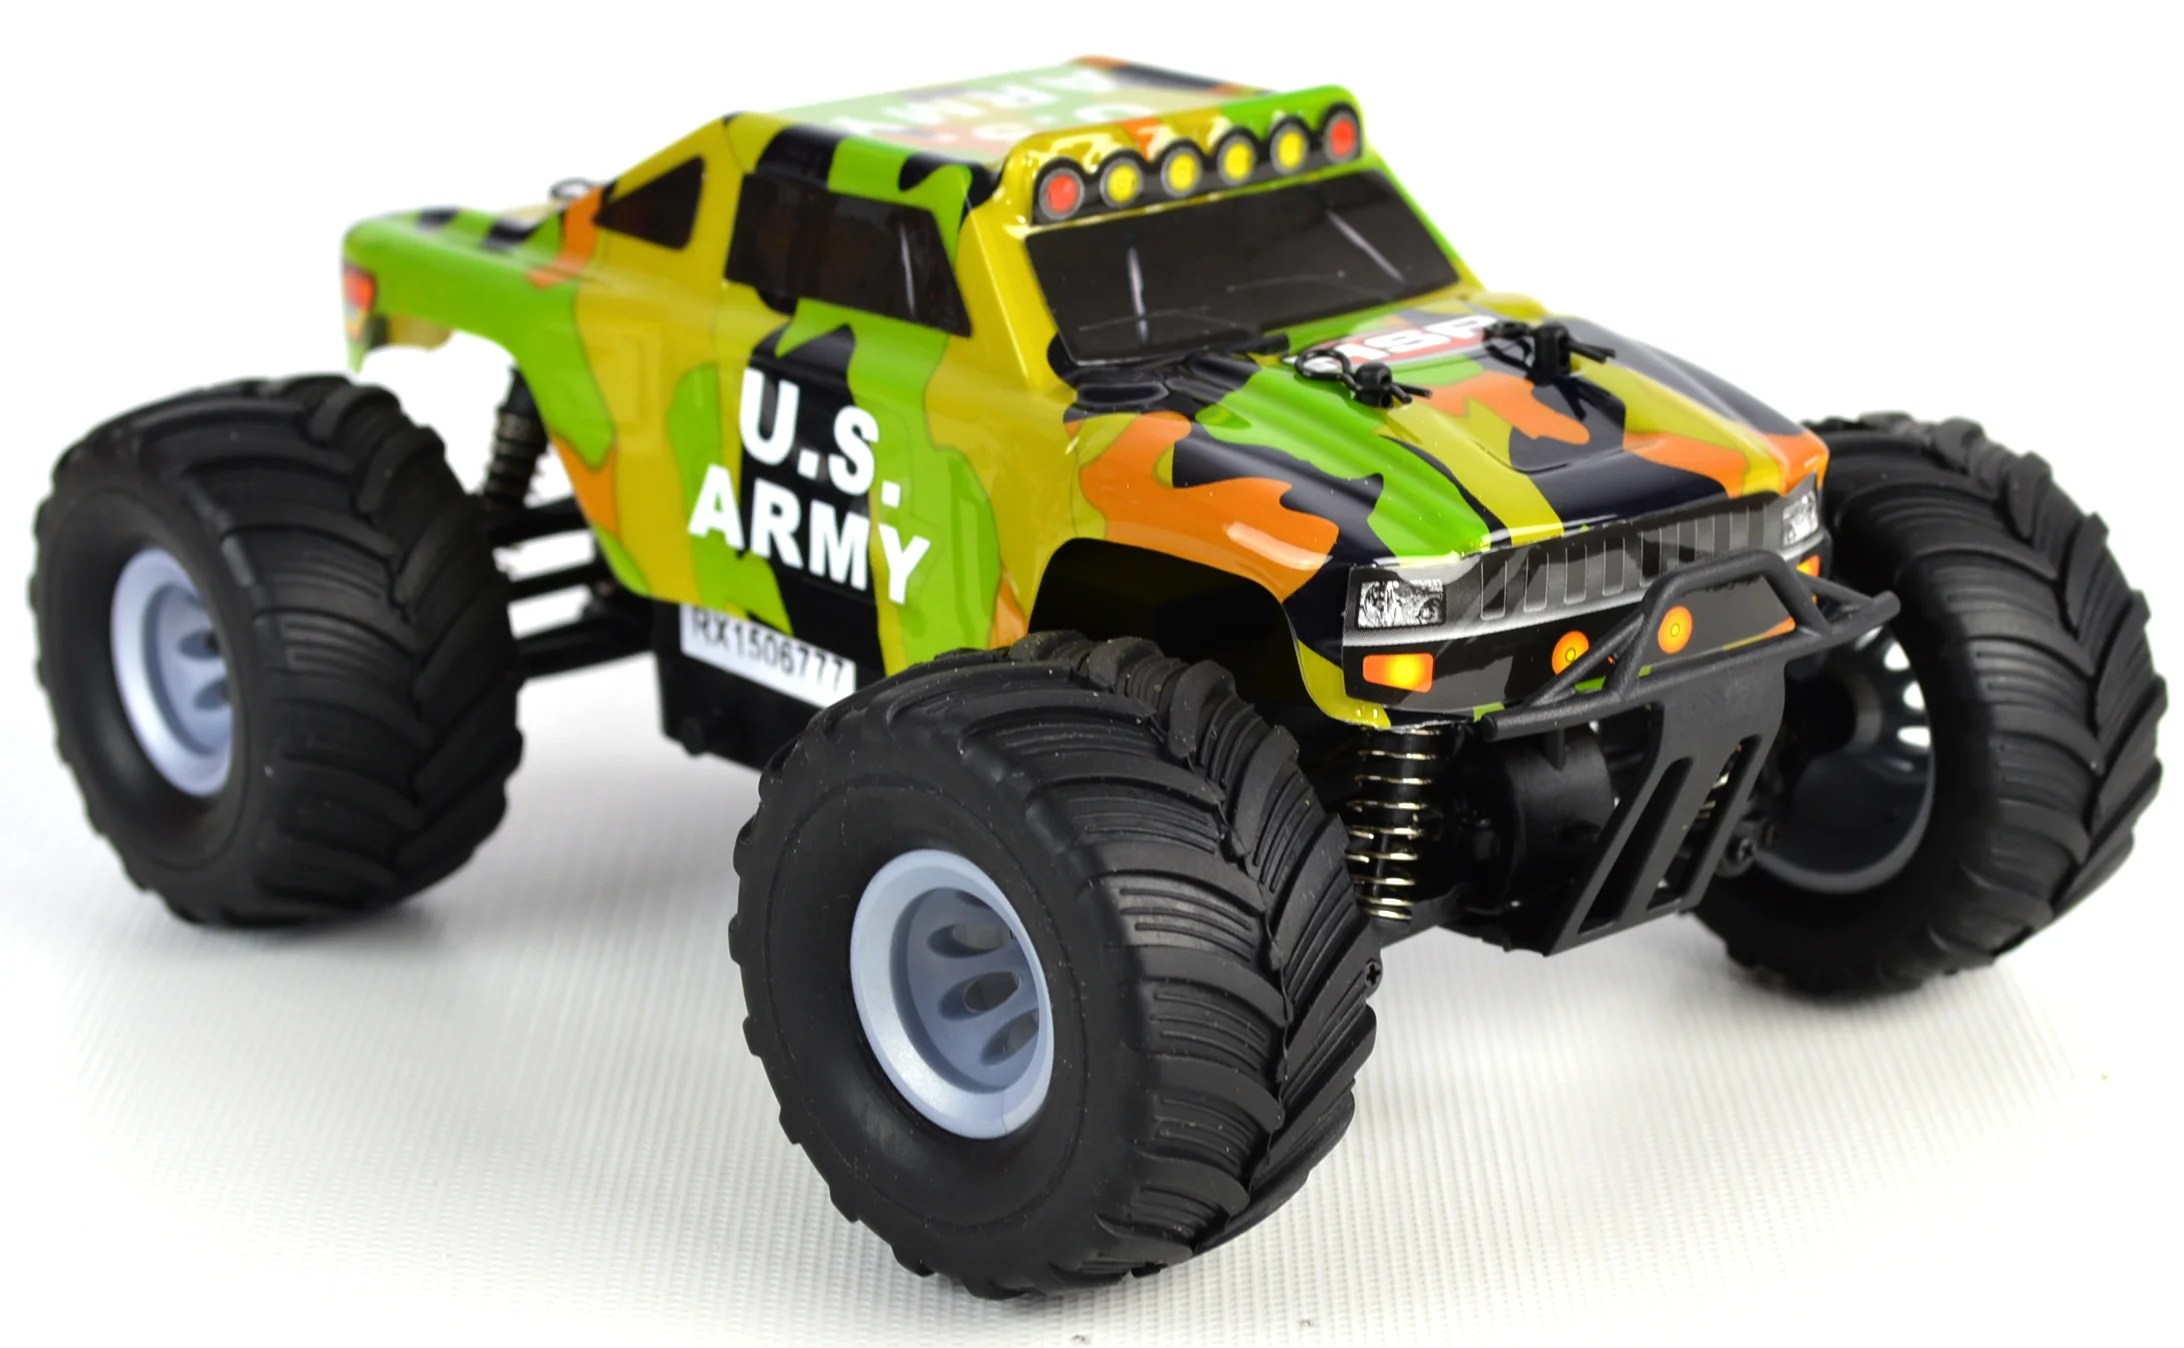 Rtr Rc Trucks Electric Bigfoot 1 24 Electric Rc Car 2 4ghz Rtr Army Hummer Truck